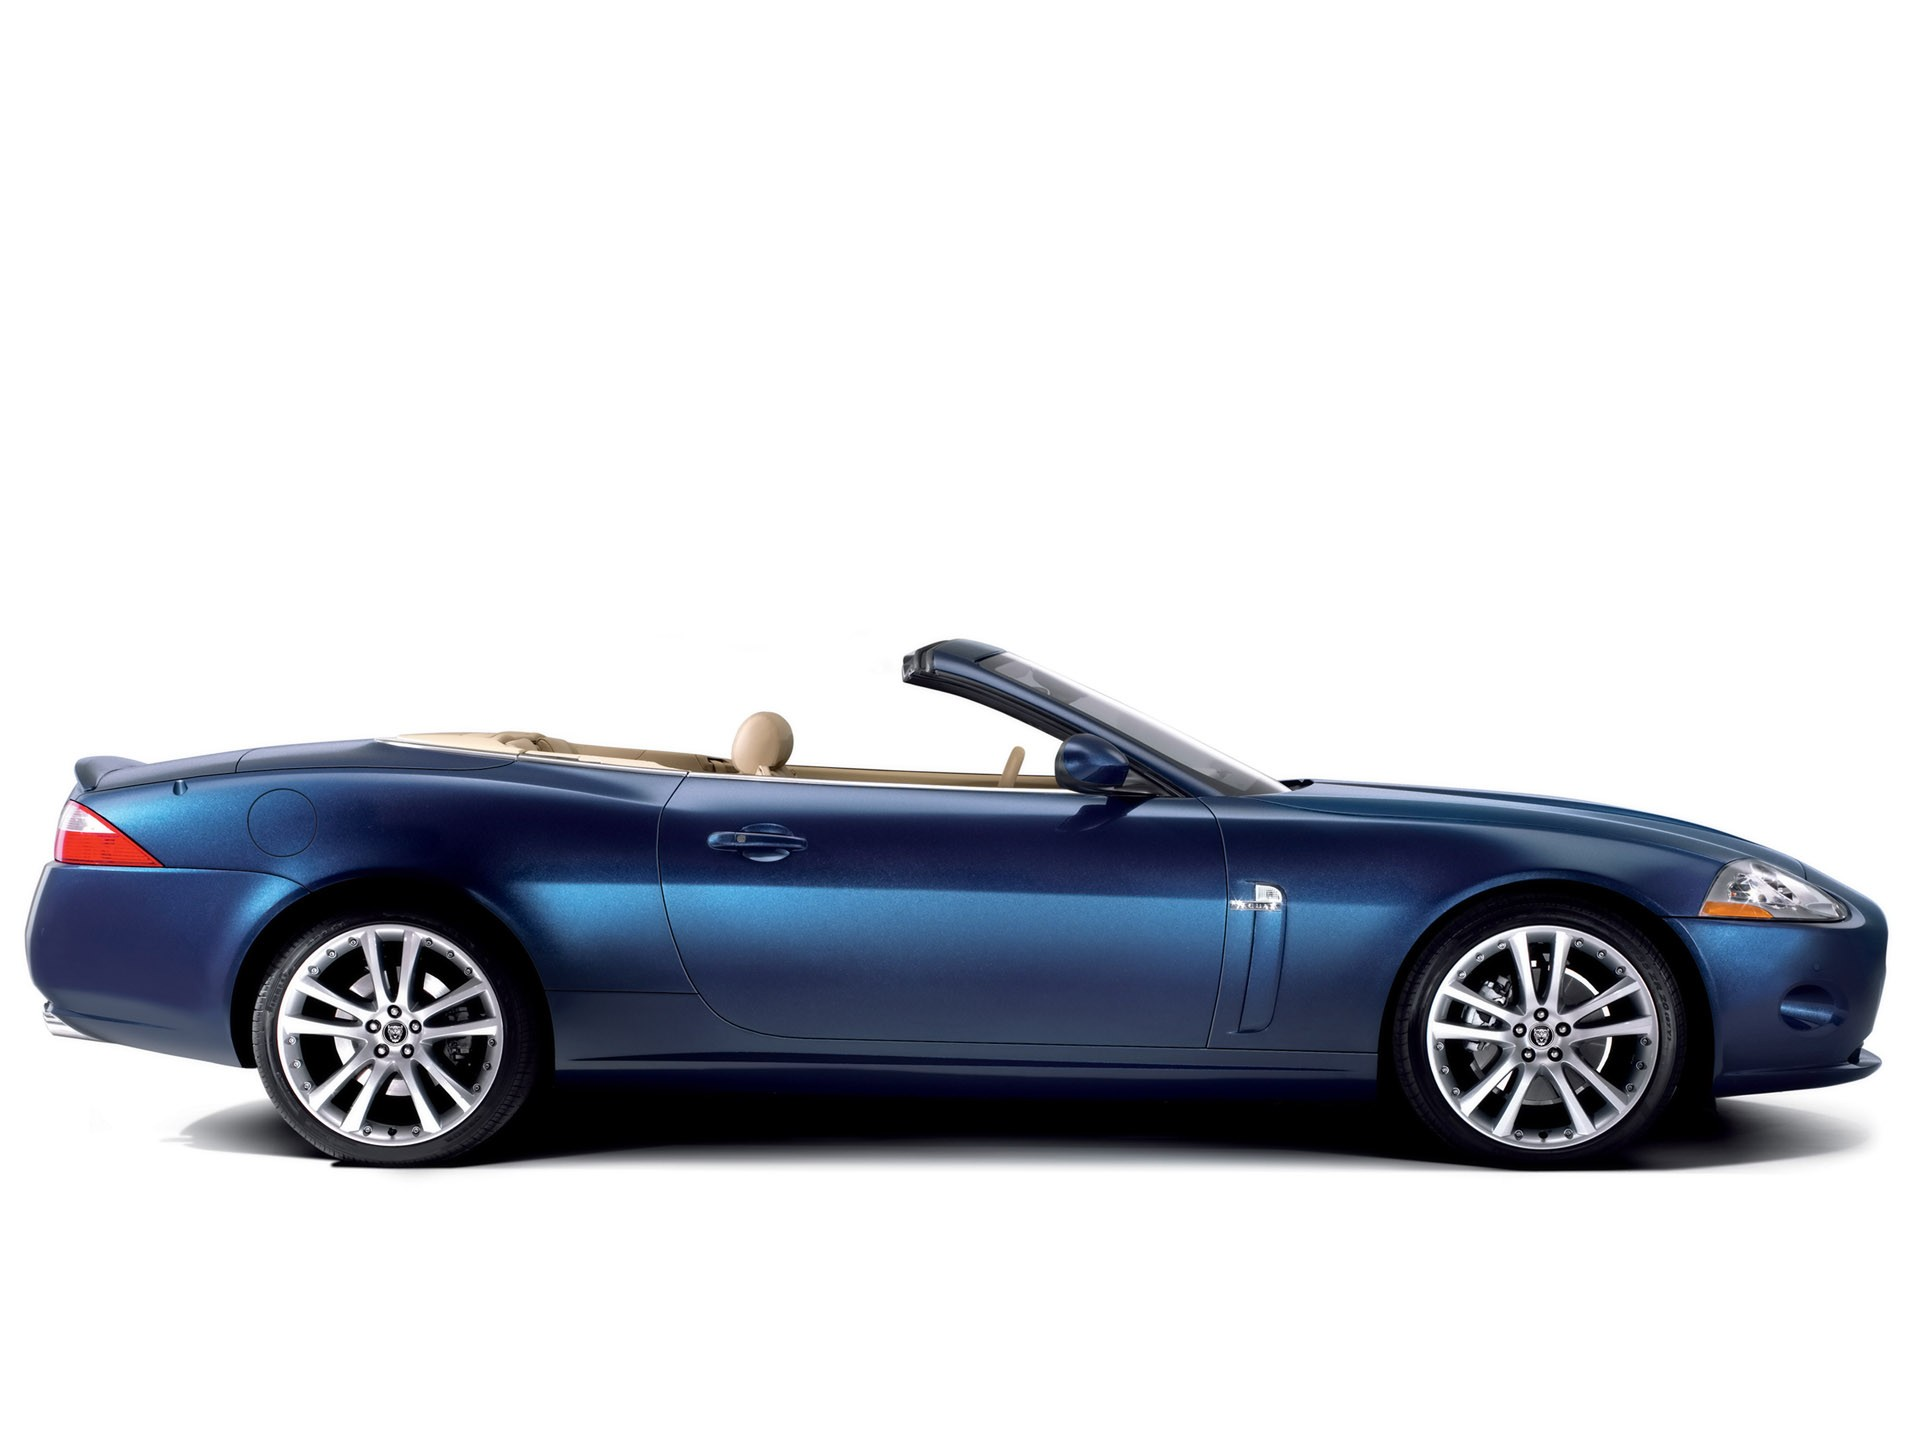 2009 XK and XKR Convertible Top